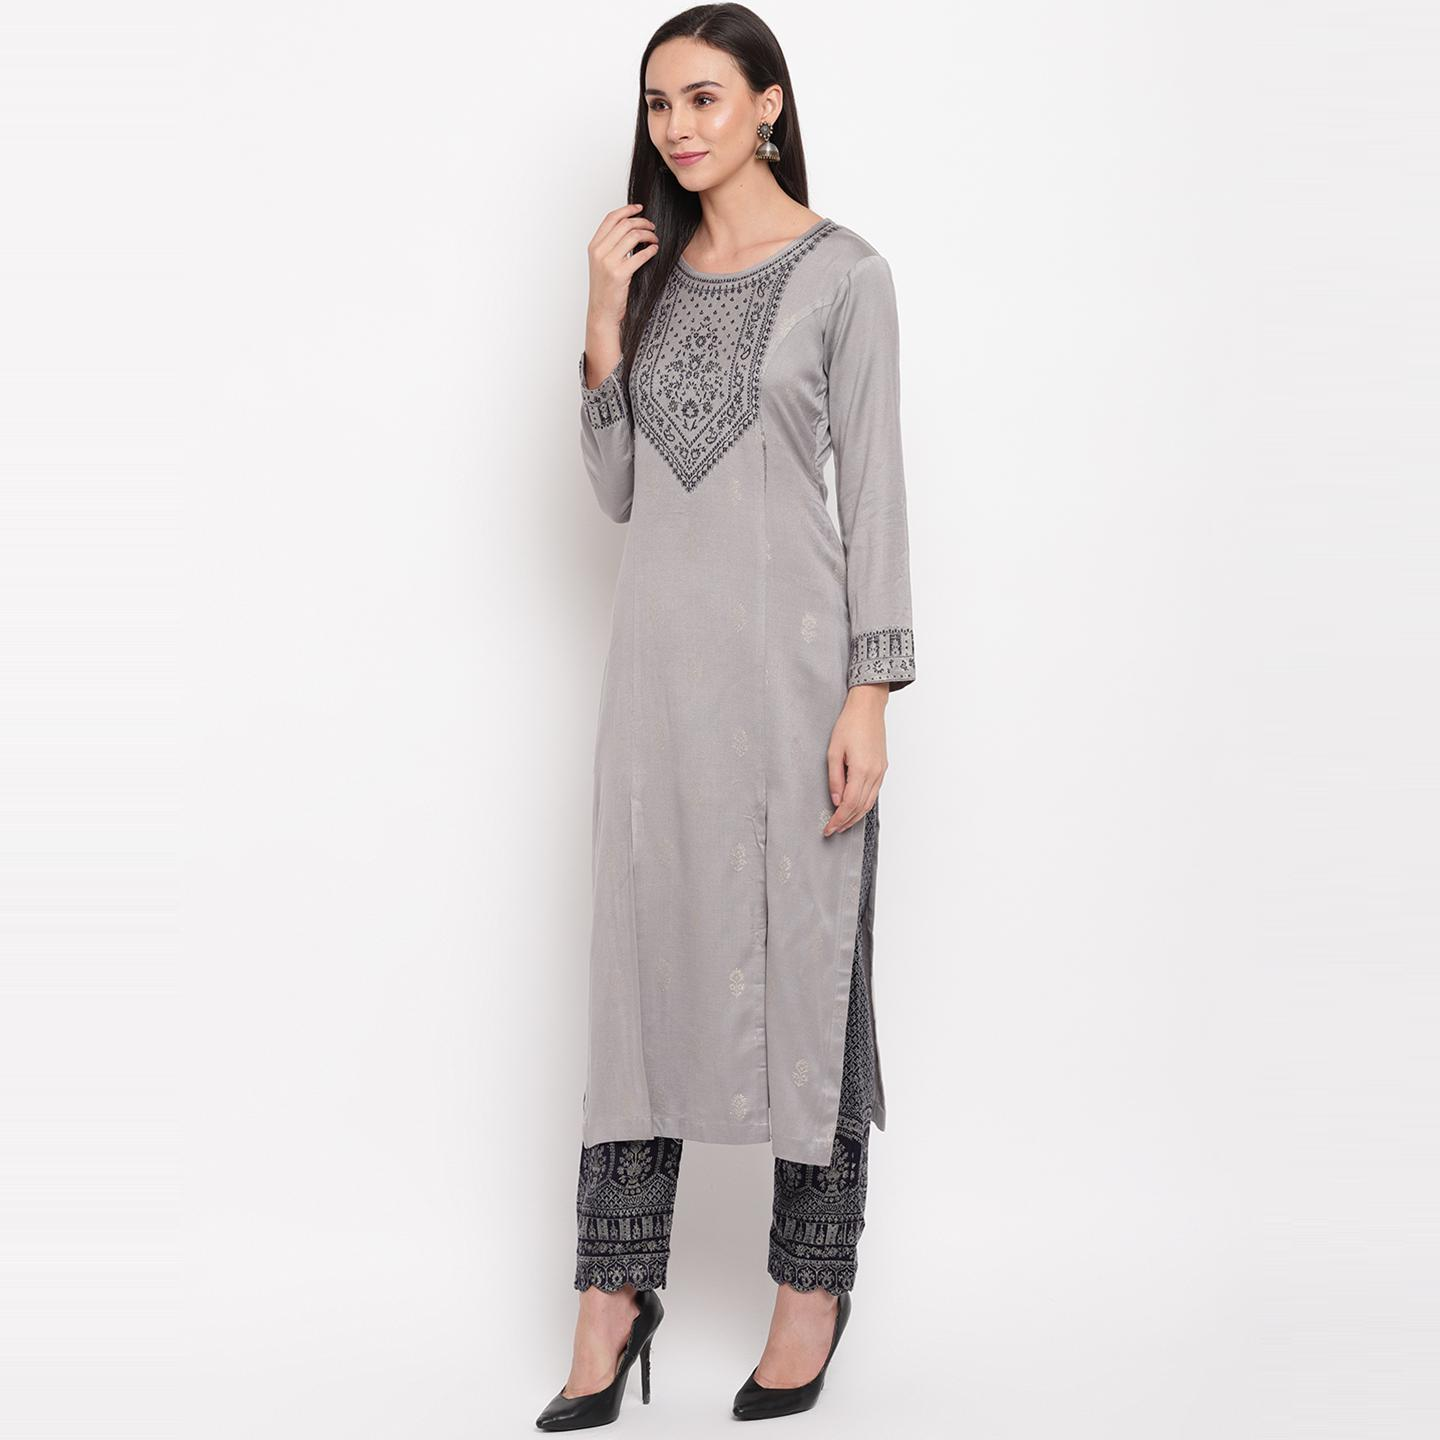 HK Colors Of Fashion - Grey Colored Liva Acrylic Wool Blend Dress Material